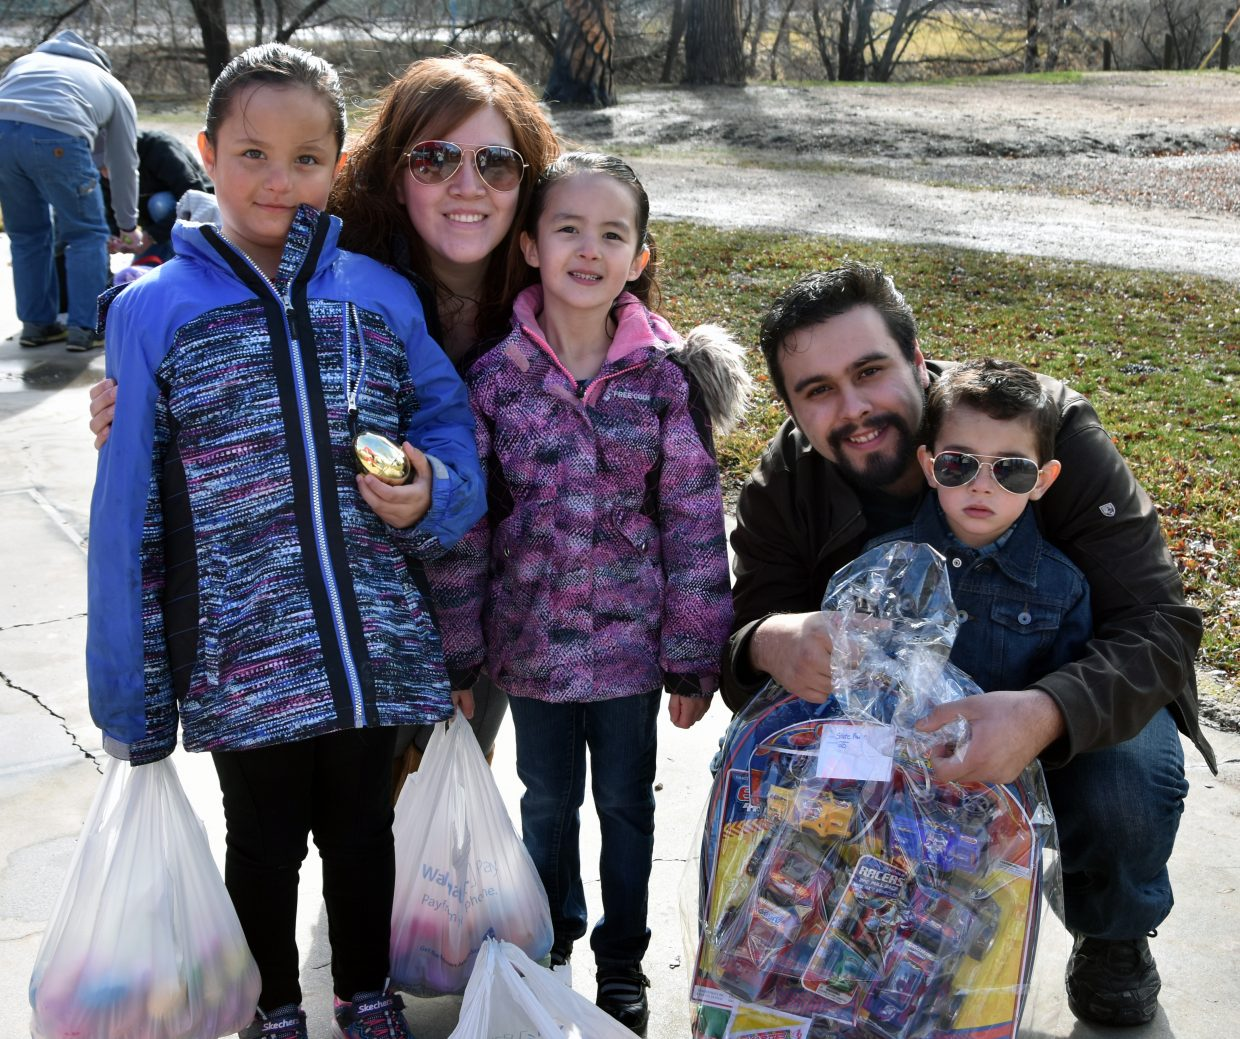 From left, Mia Valenzuela, age 6; Erika Valenzuela and Valeria Valenzuela, age 5; and Joe Romero and Rogelio Romero-Valenzuela, age 2,  pose with Rogelio's prize basket. Rogelio found the golden egg hidden for children in the 0-3 year old age division.